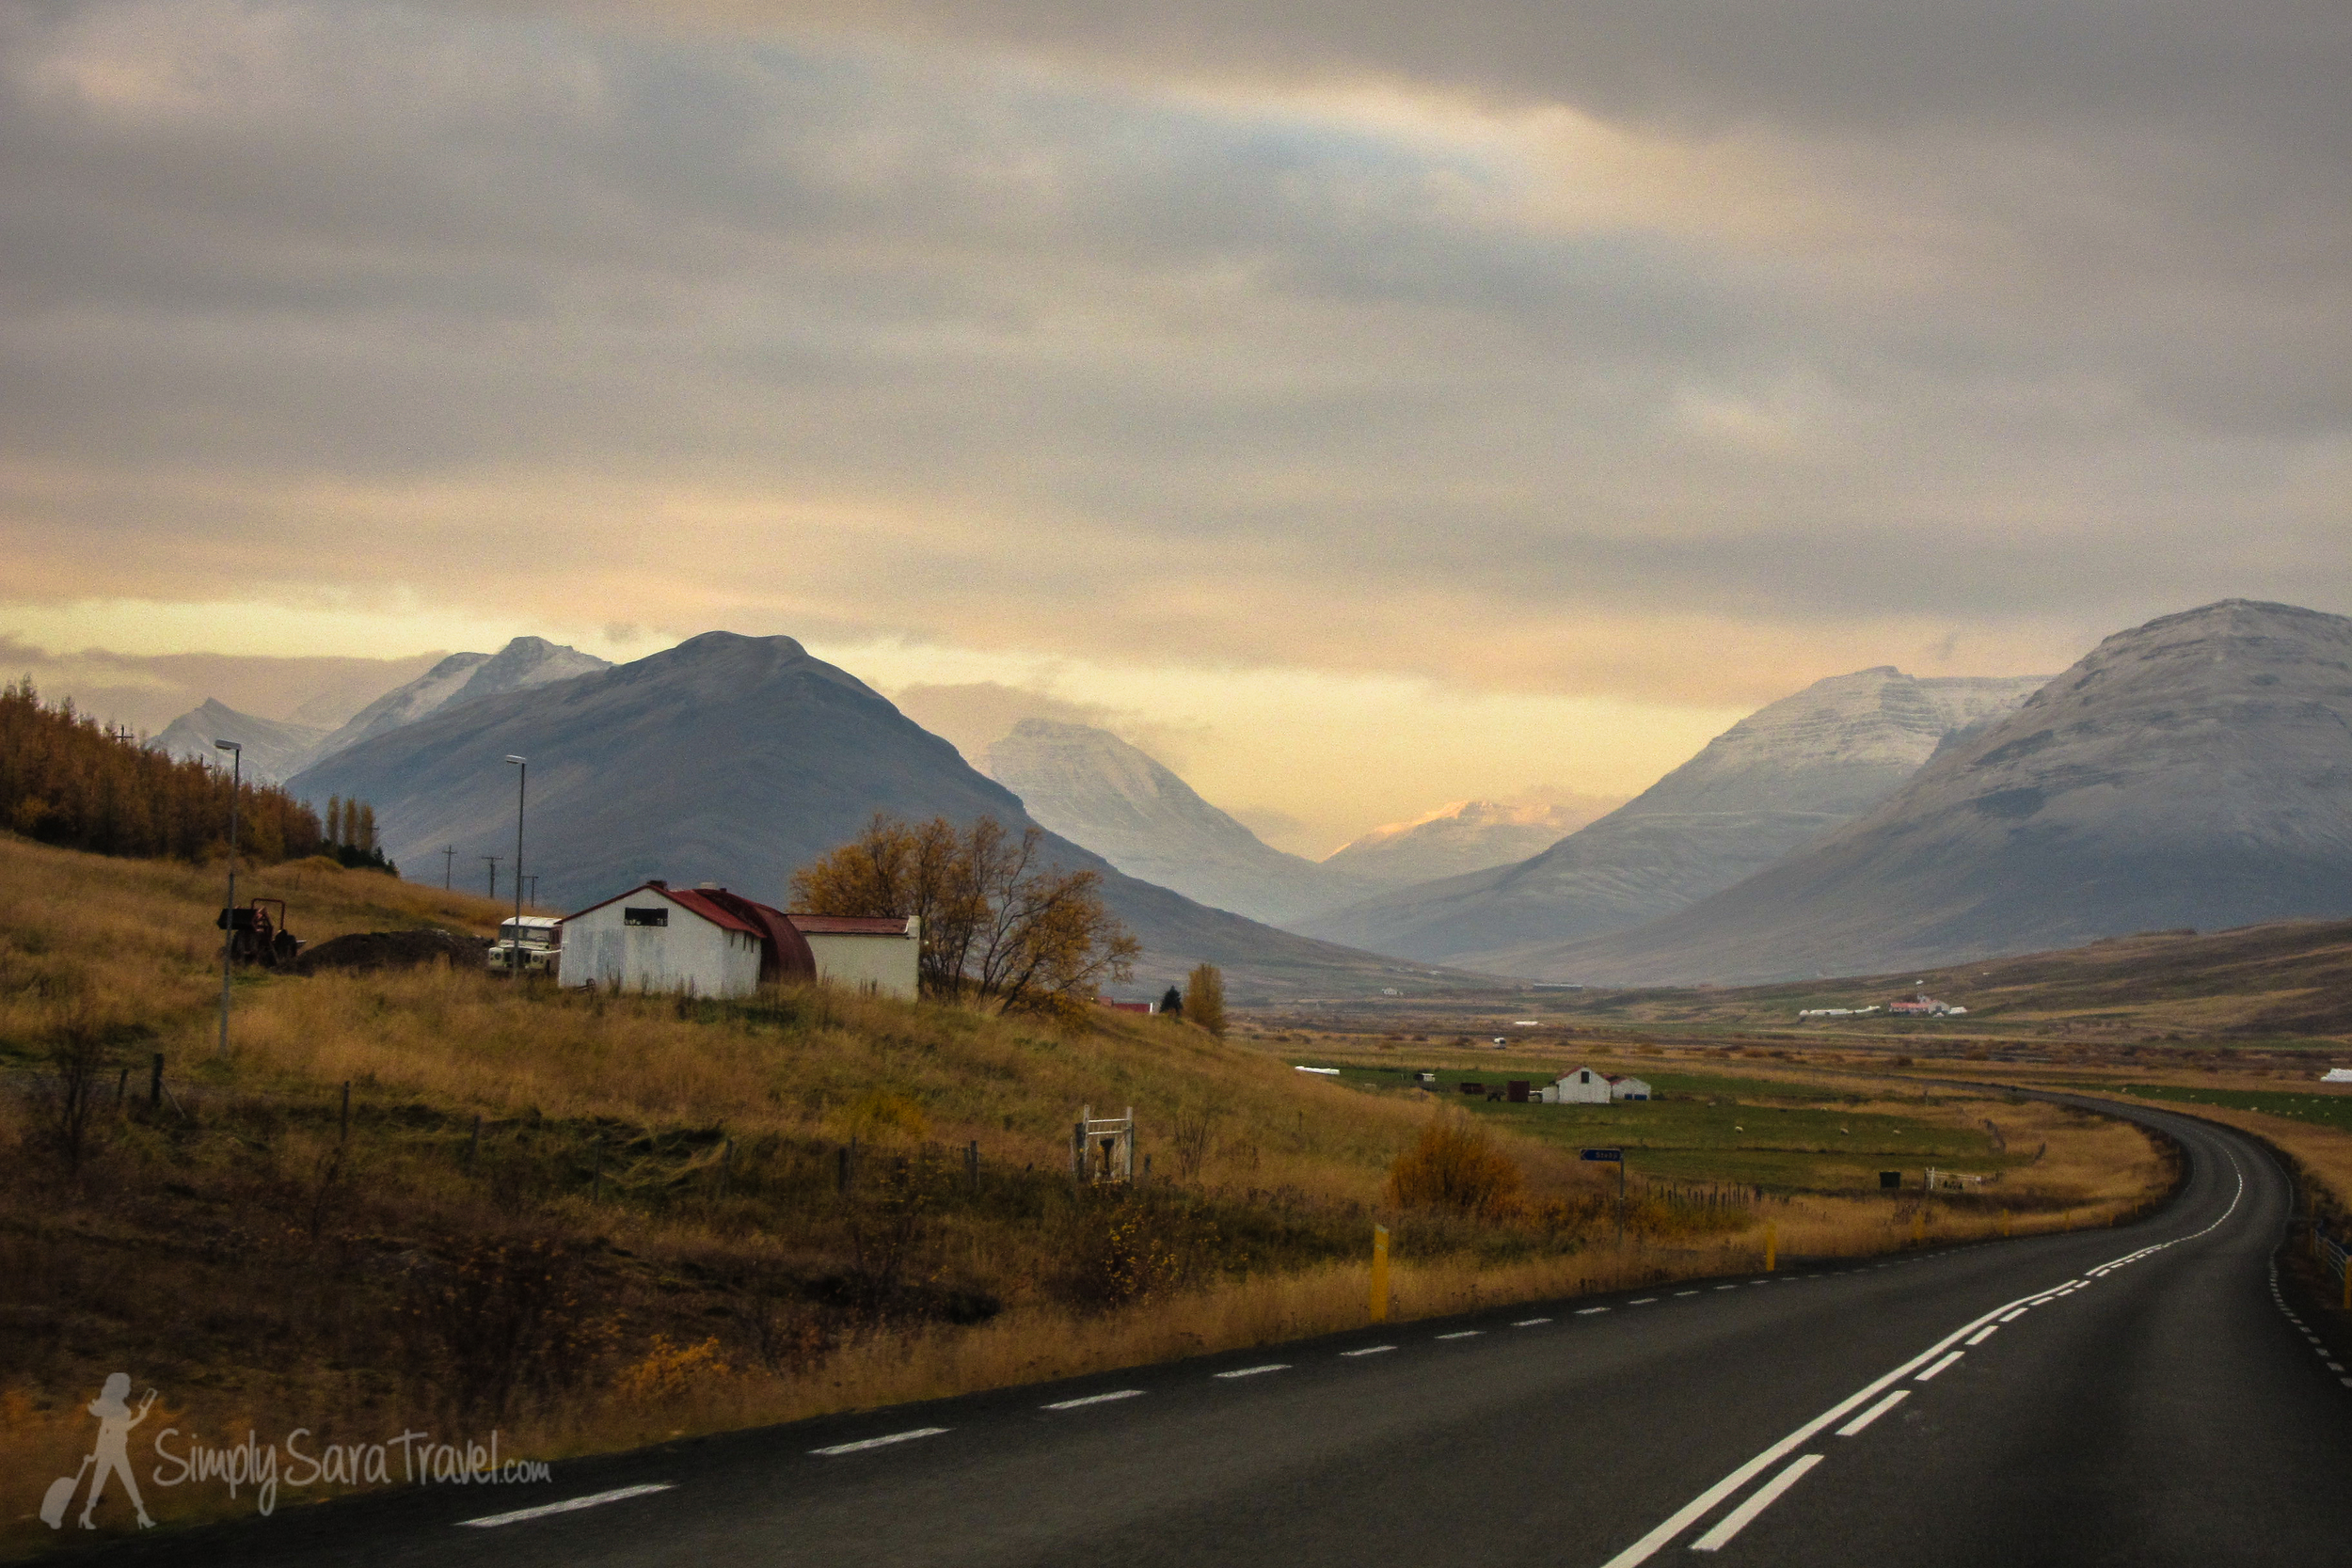 I'm surprised that one of my favorites was taken right from our moving car! I couldn't stop snapping away as we drove through Iceland (unless I was at the wheel, of course!).